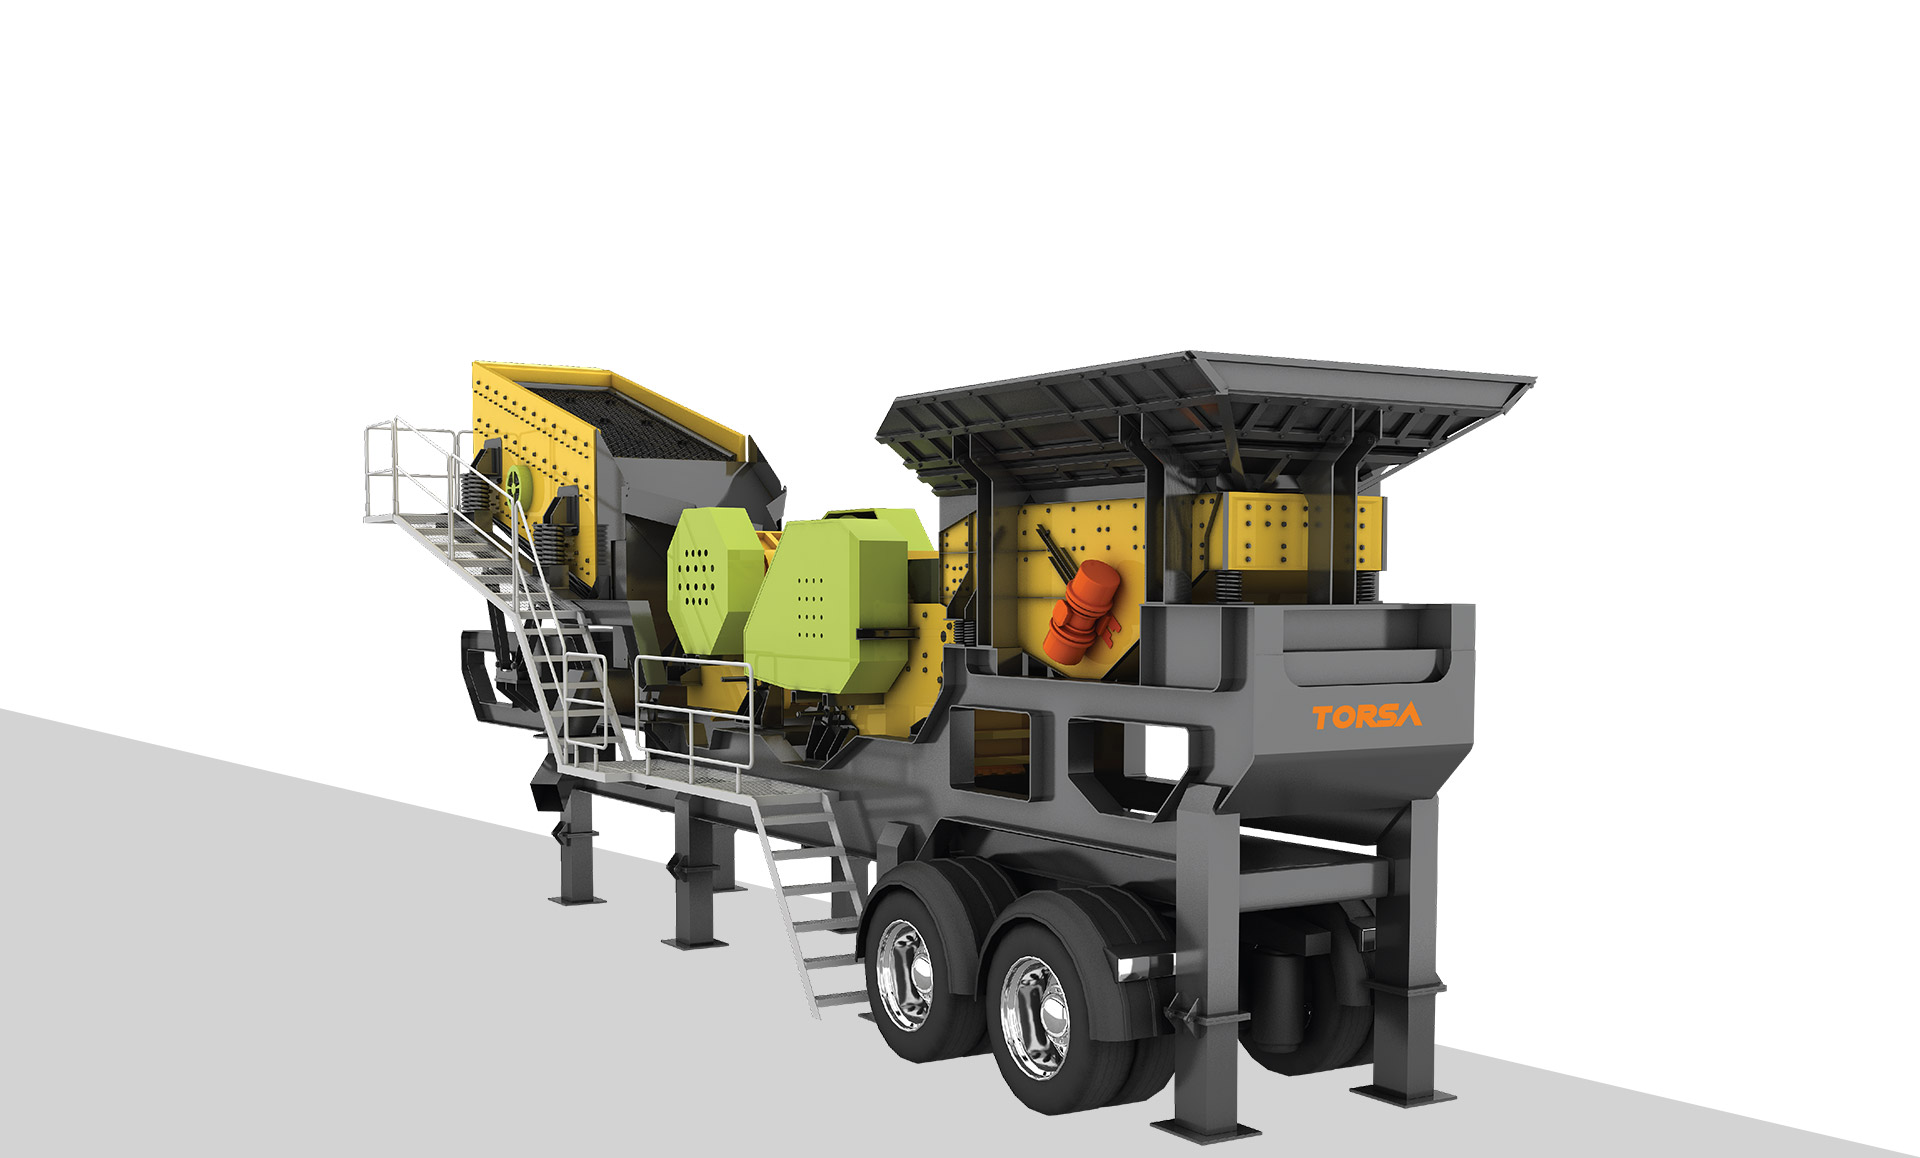 Machinery for Rock & Mineral Processing Industry | crusher plant | Torsa